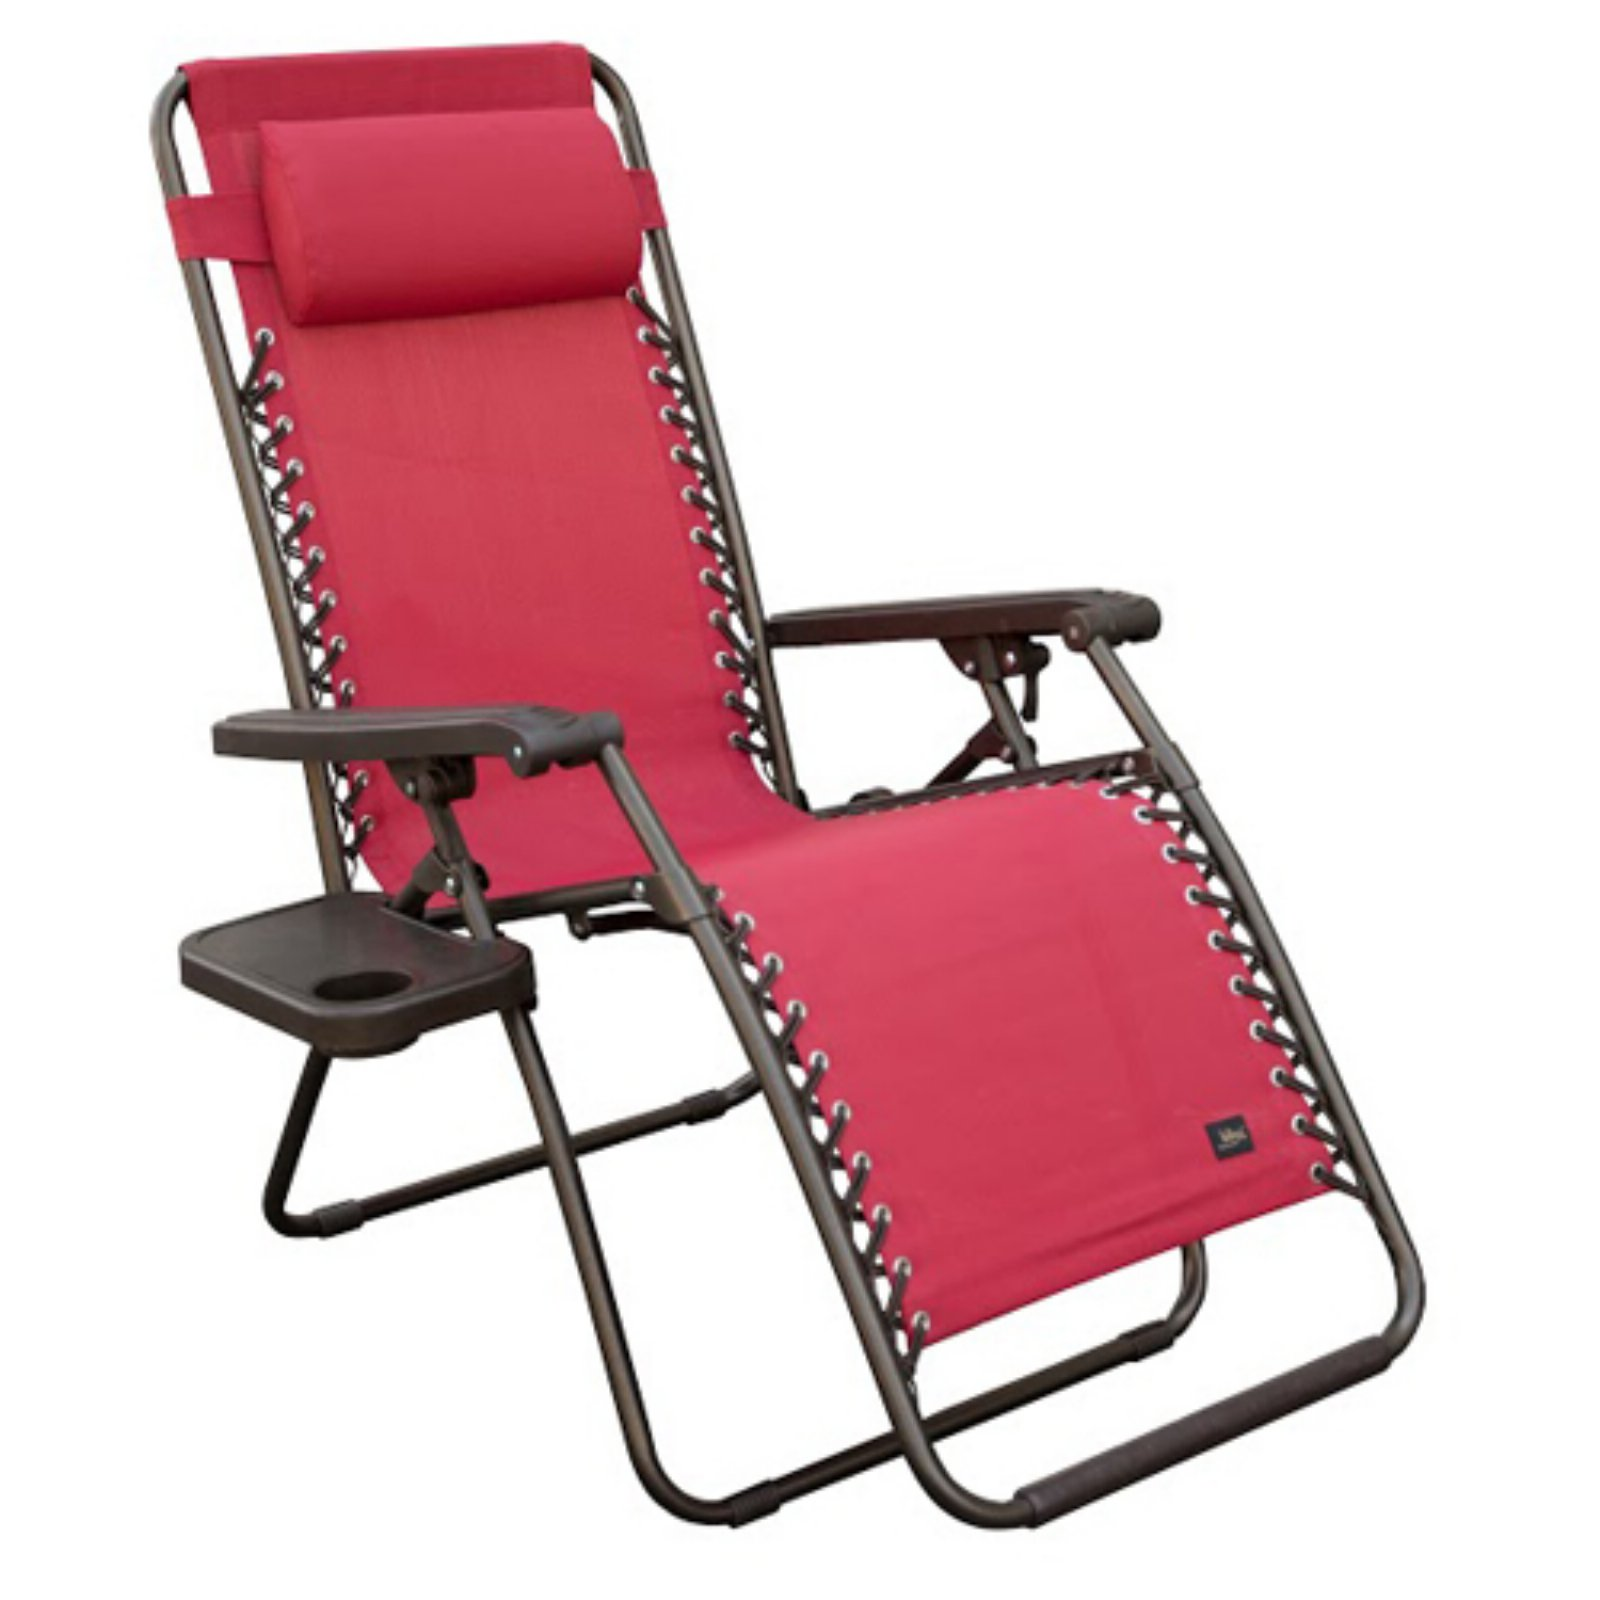 Bliss Gravity-Free Lounger with Pillow